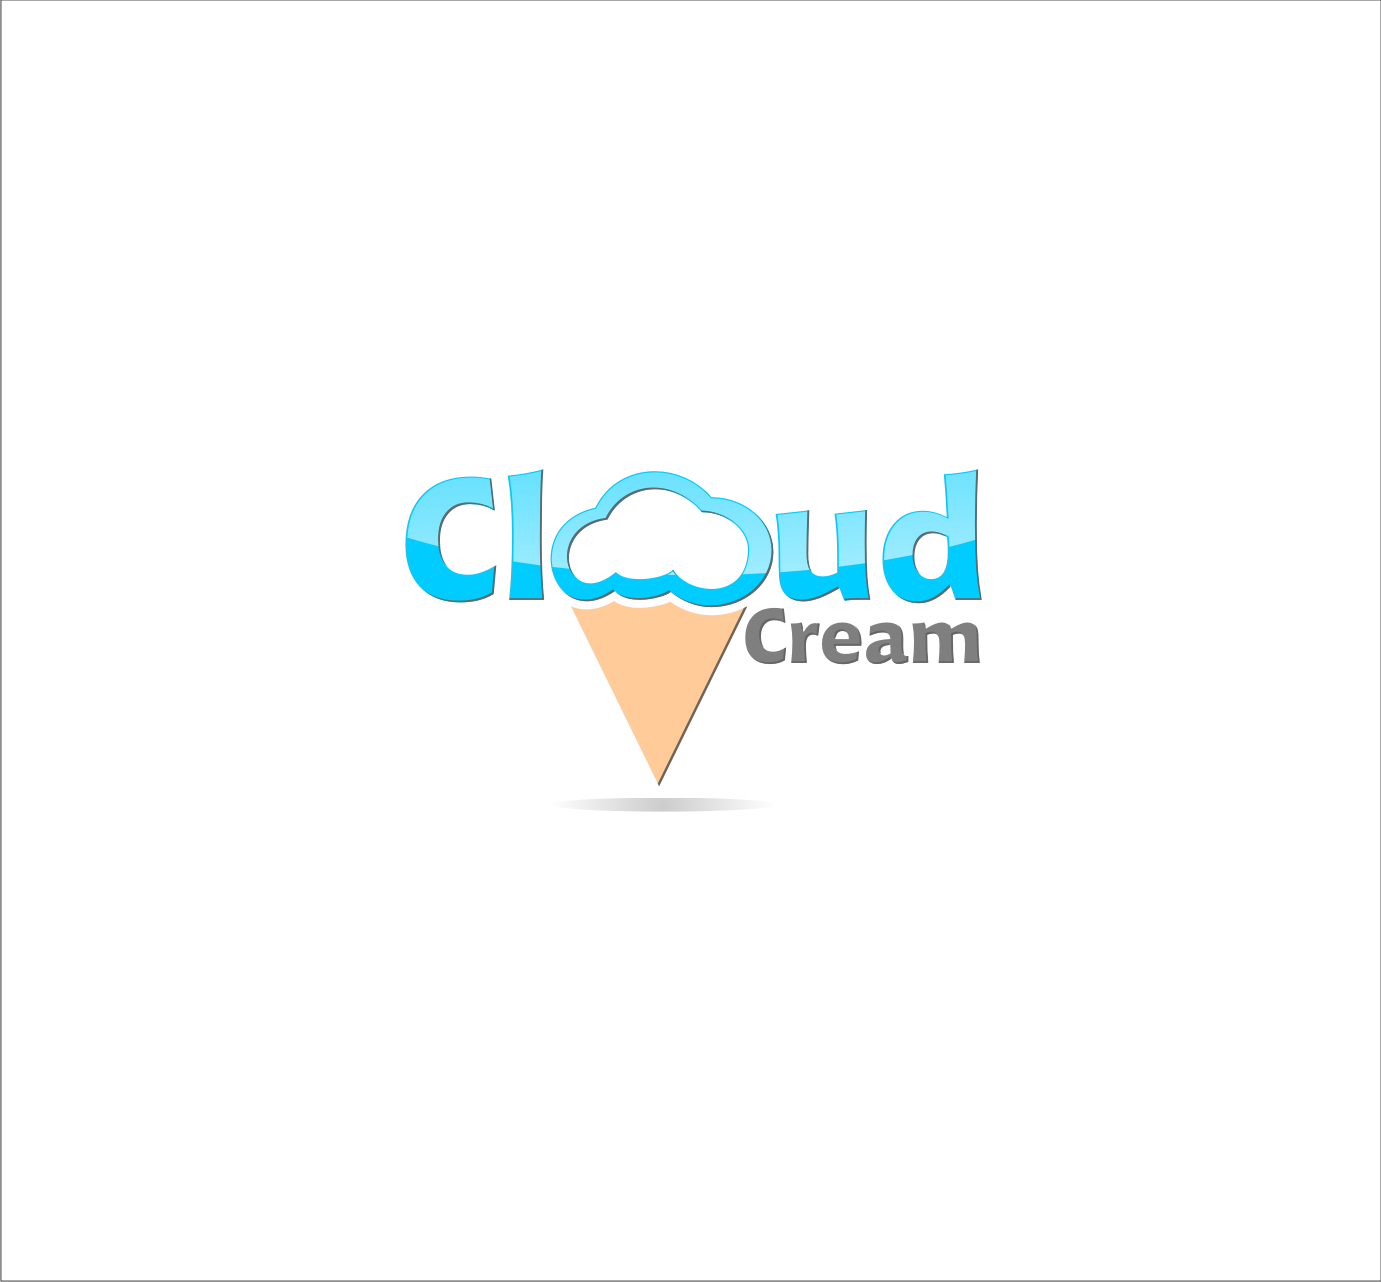 Cloud Cream needs a new logo